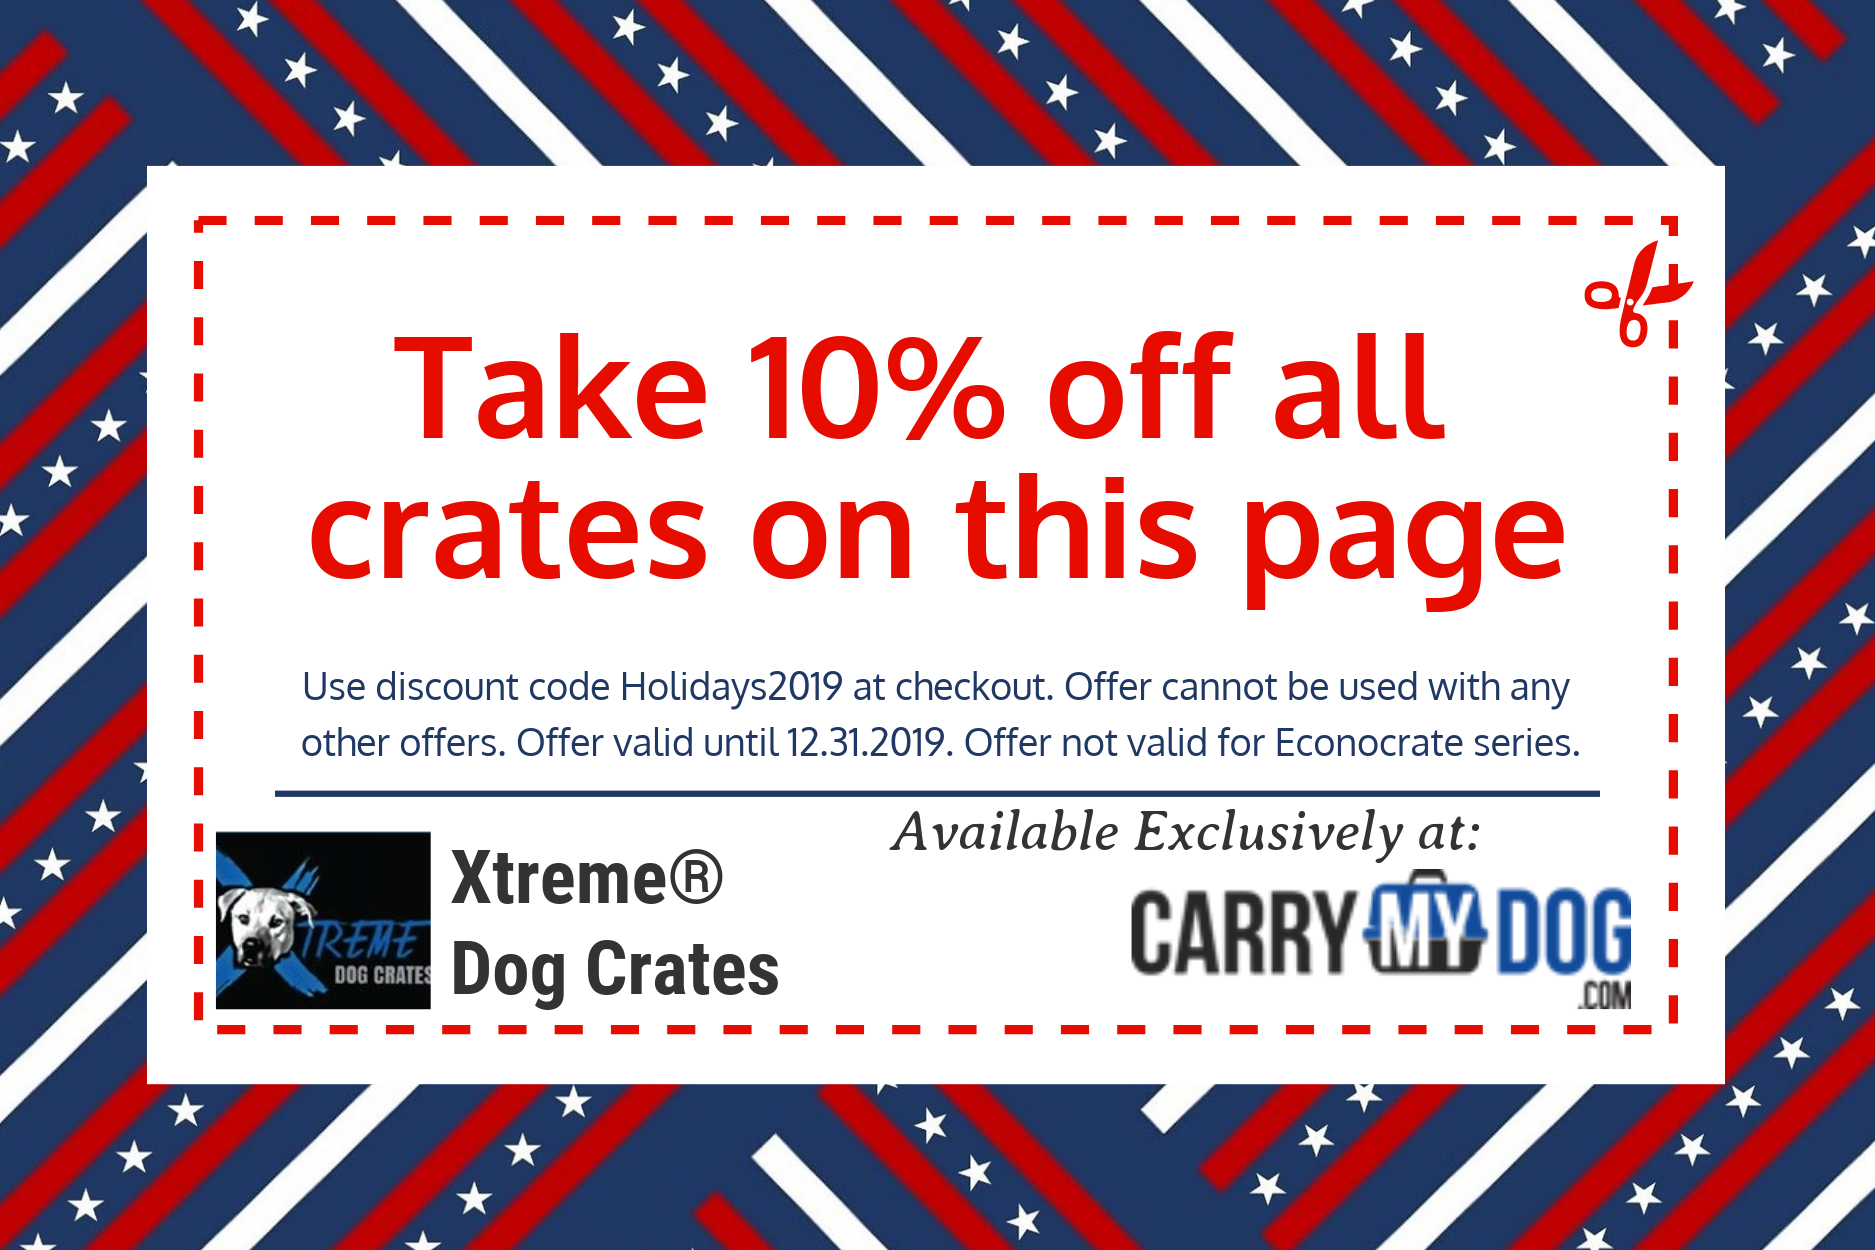 10_off_Xtreme_heavy_duty_dog_crate_from_carrymydog.com